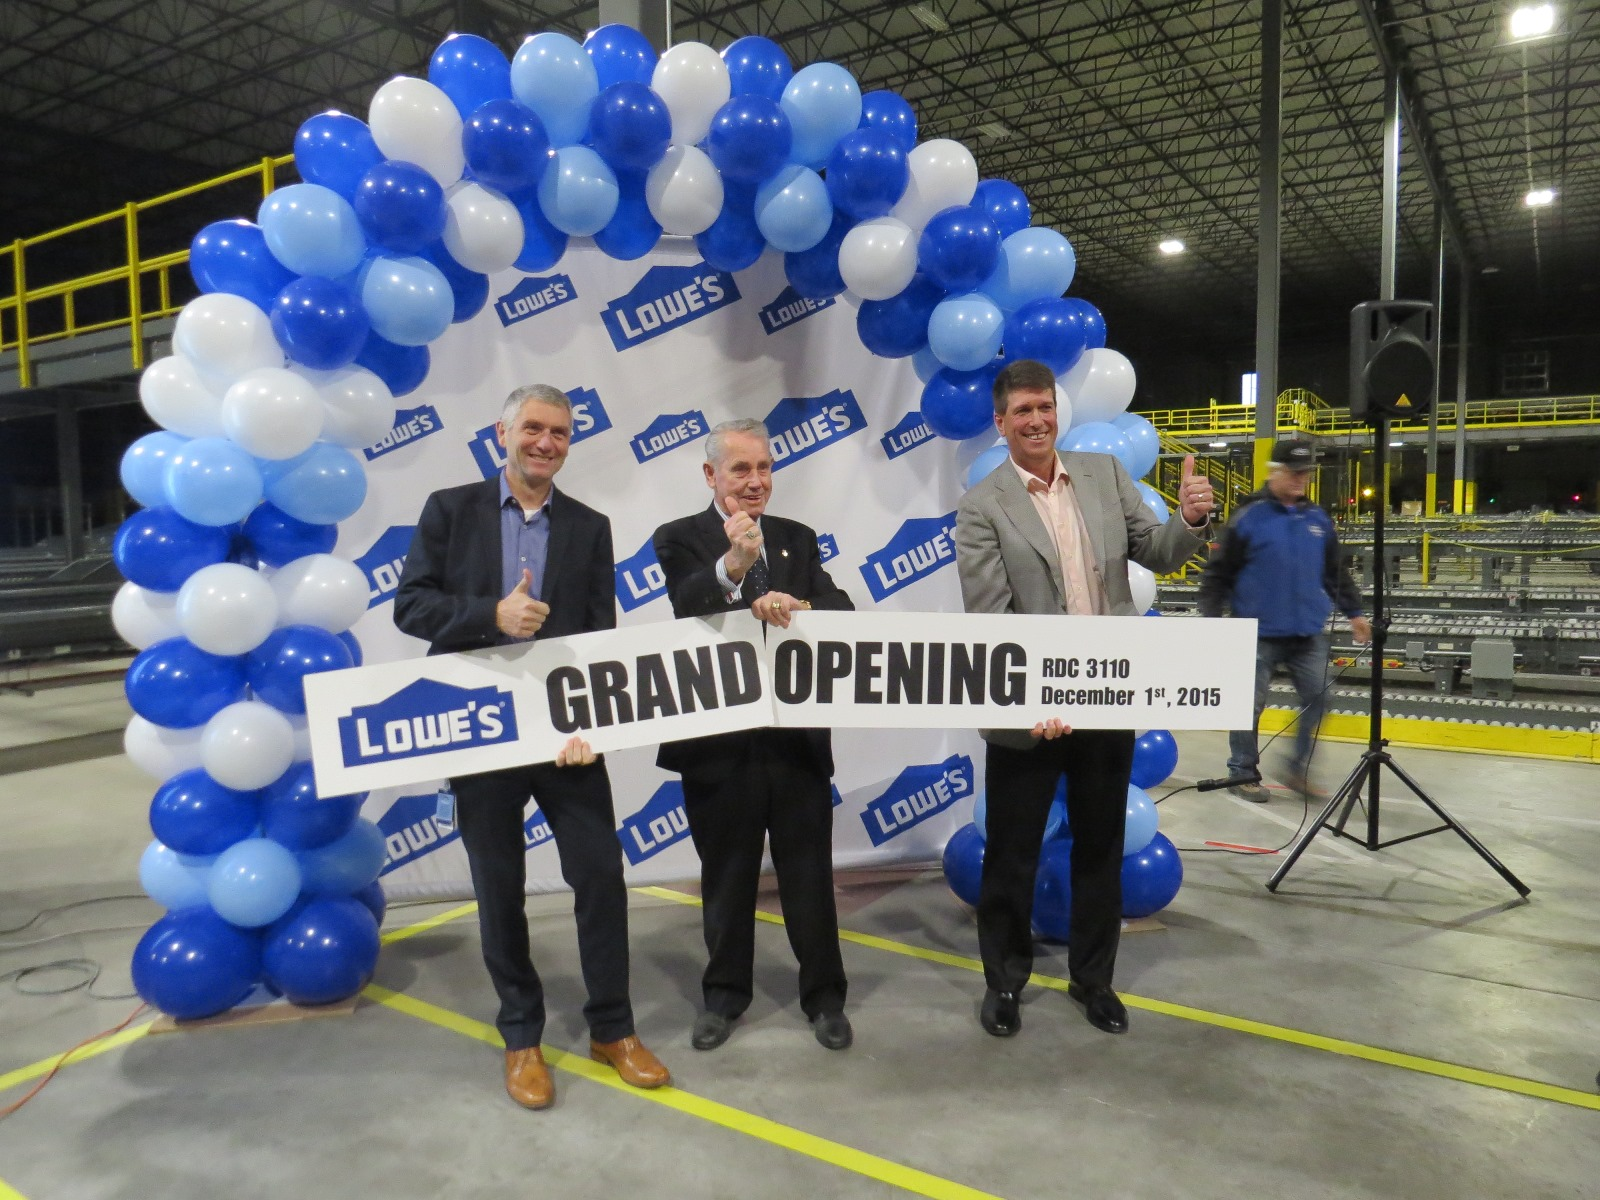 Mayor-Krantz-Lowes-grandopening.jpg